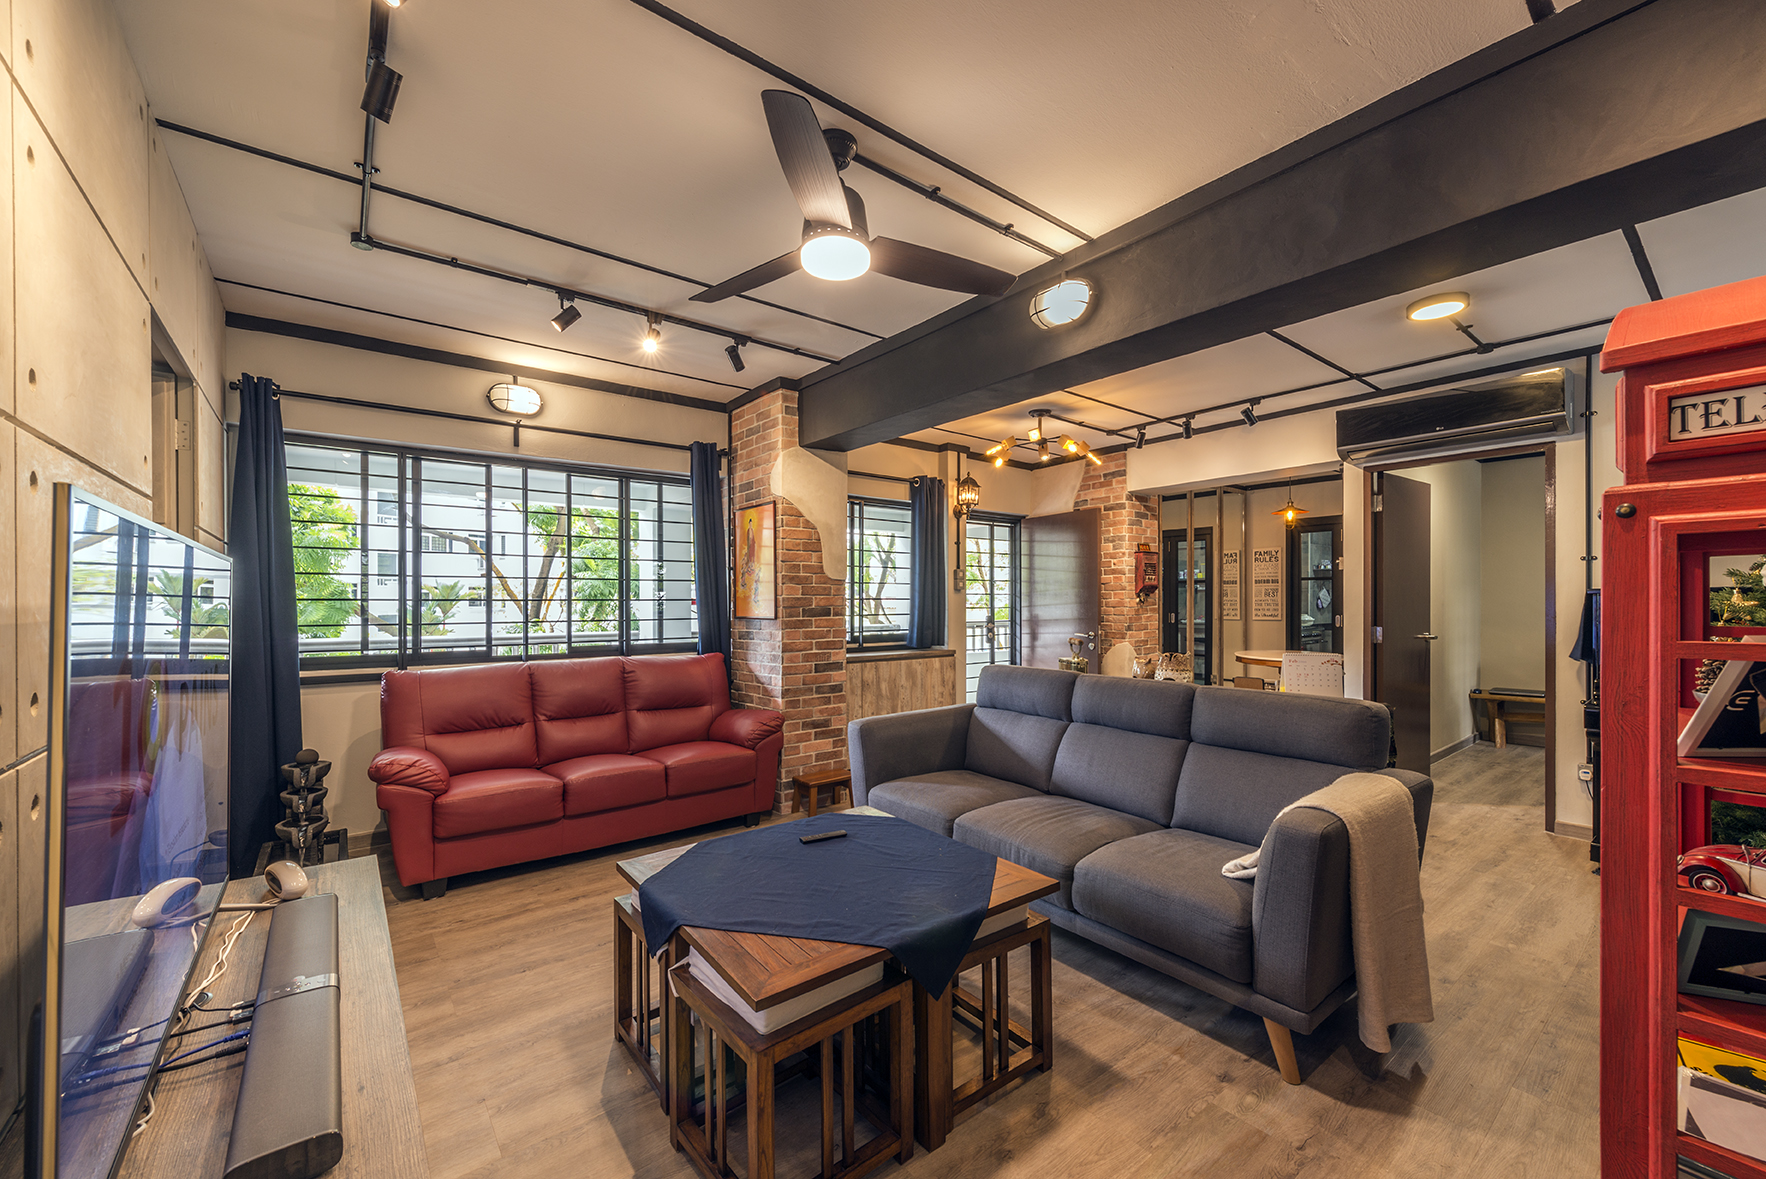 Featured Design Style Industrial St Homes Singapore